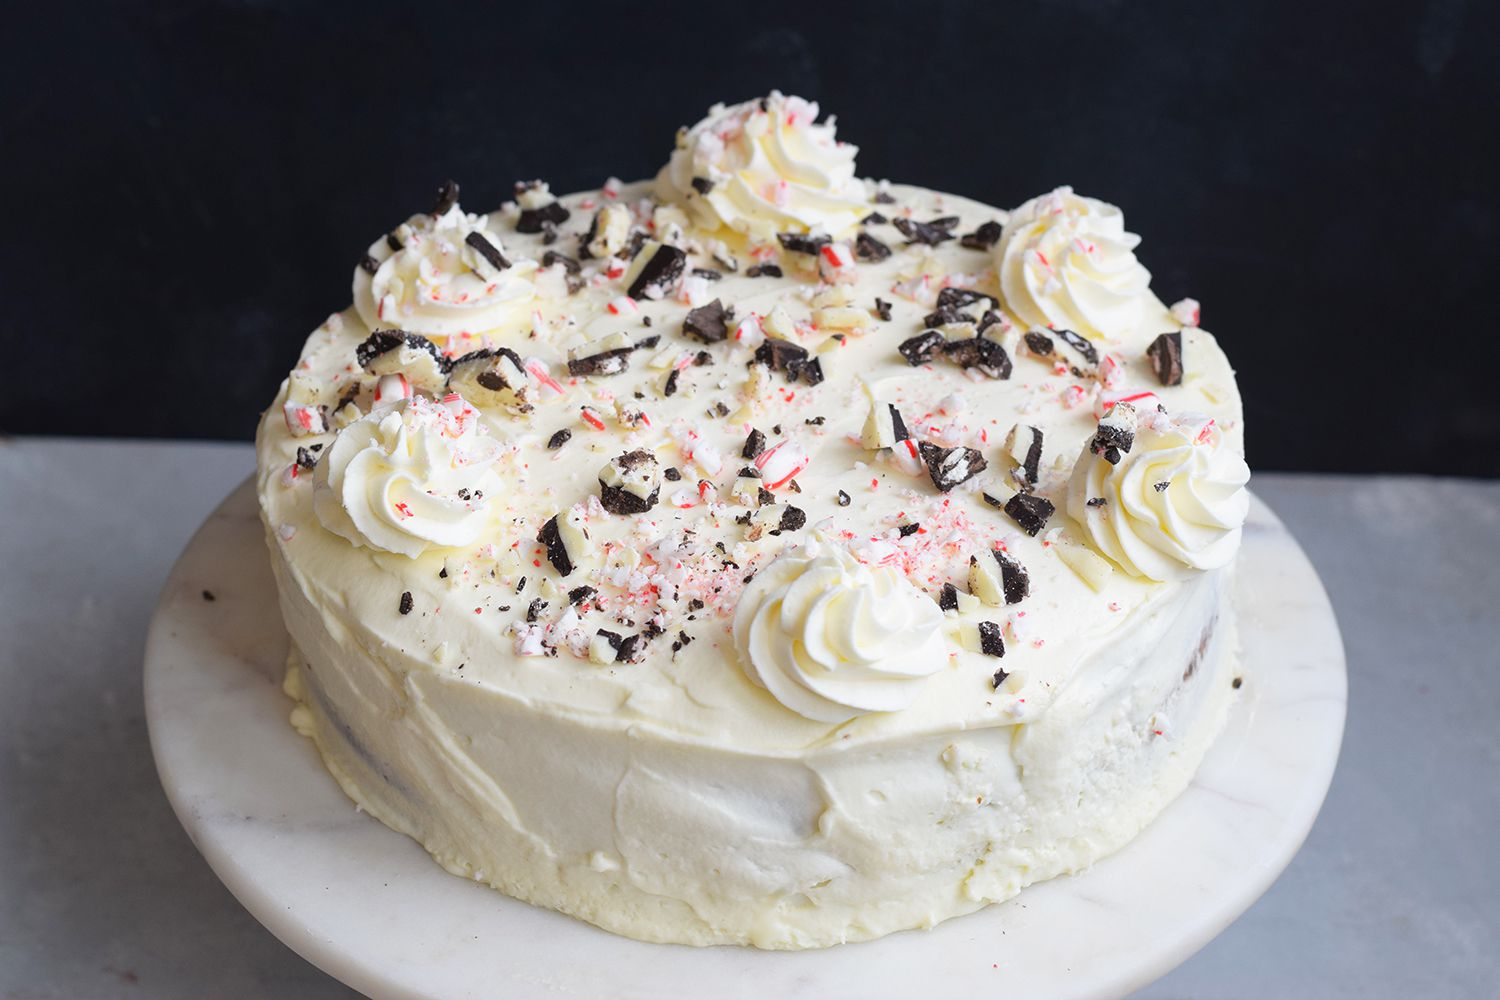 Decorate the cheesecake